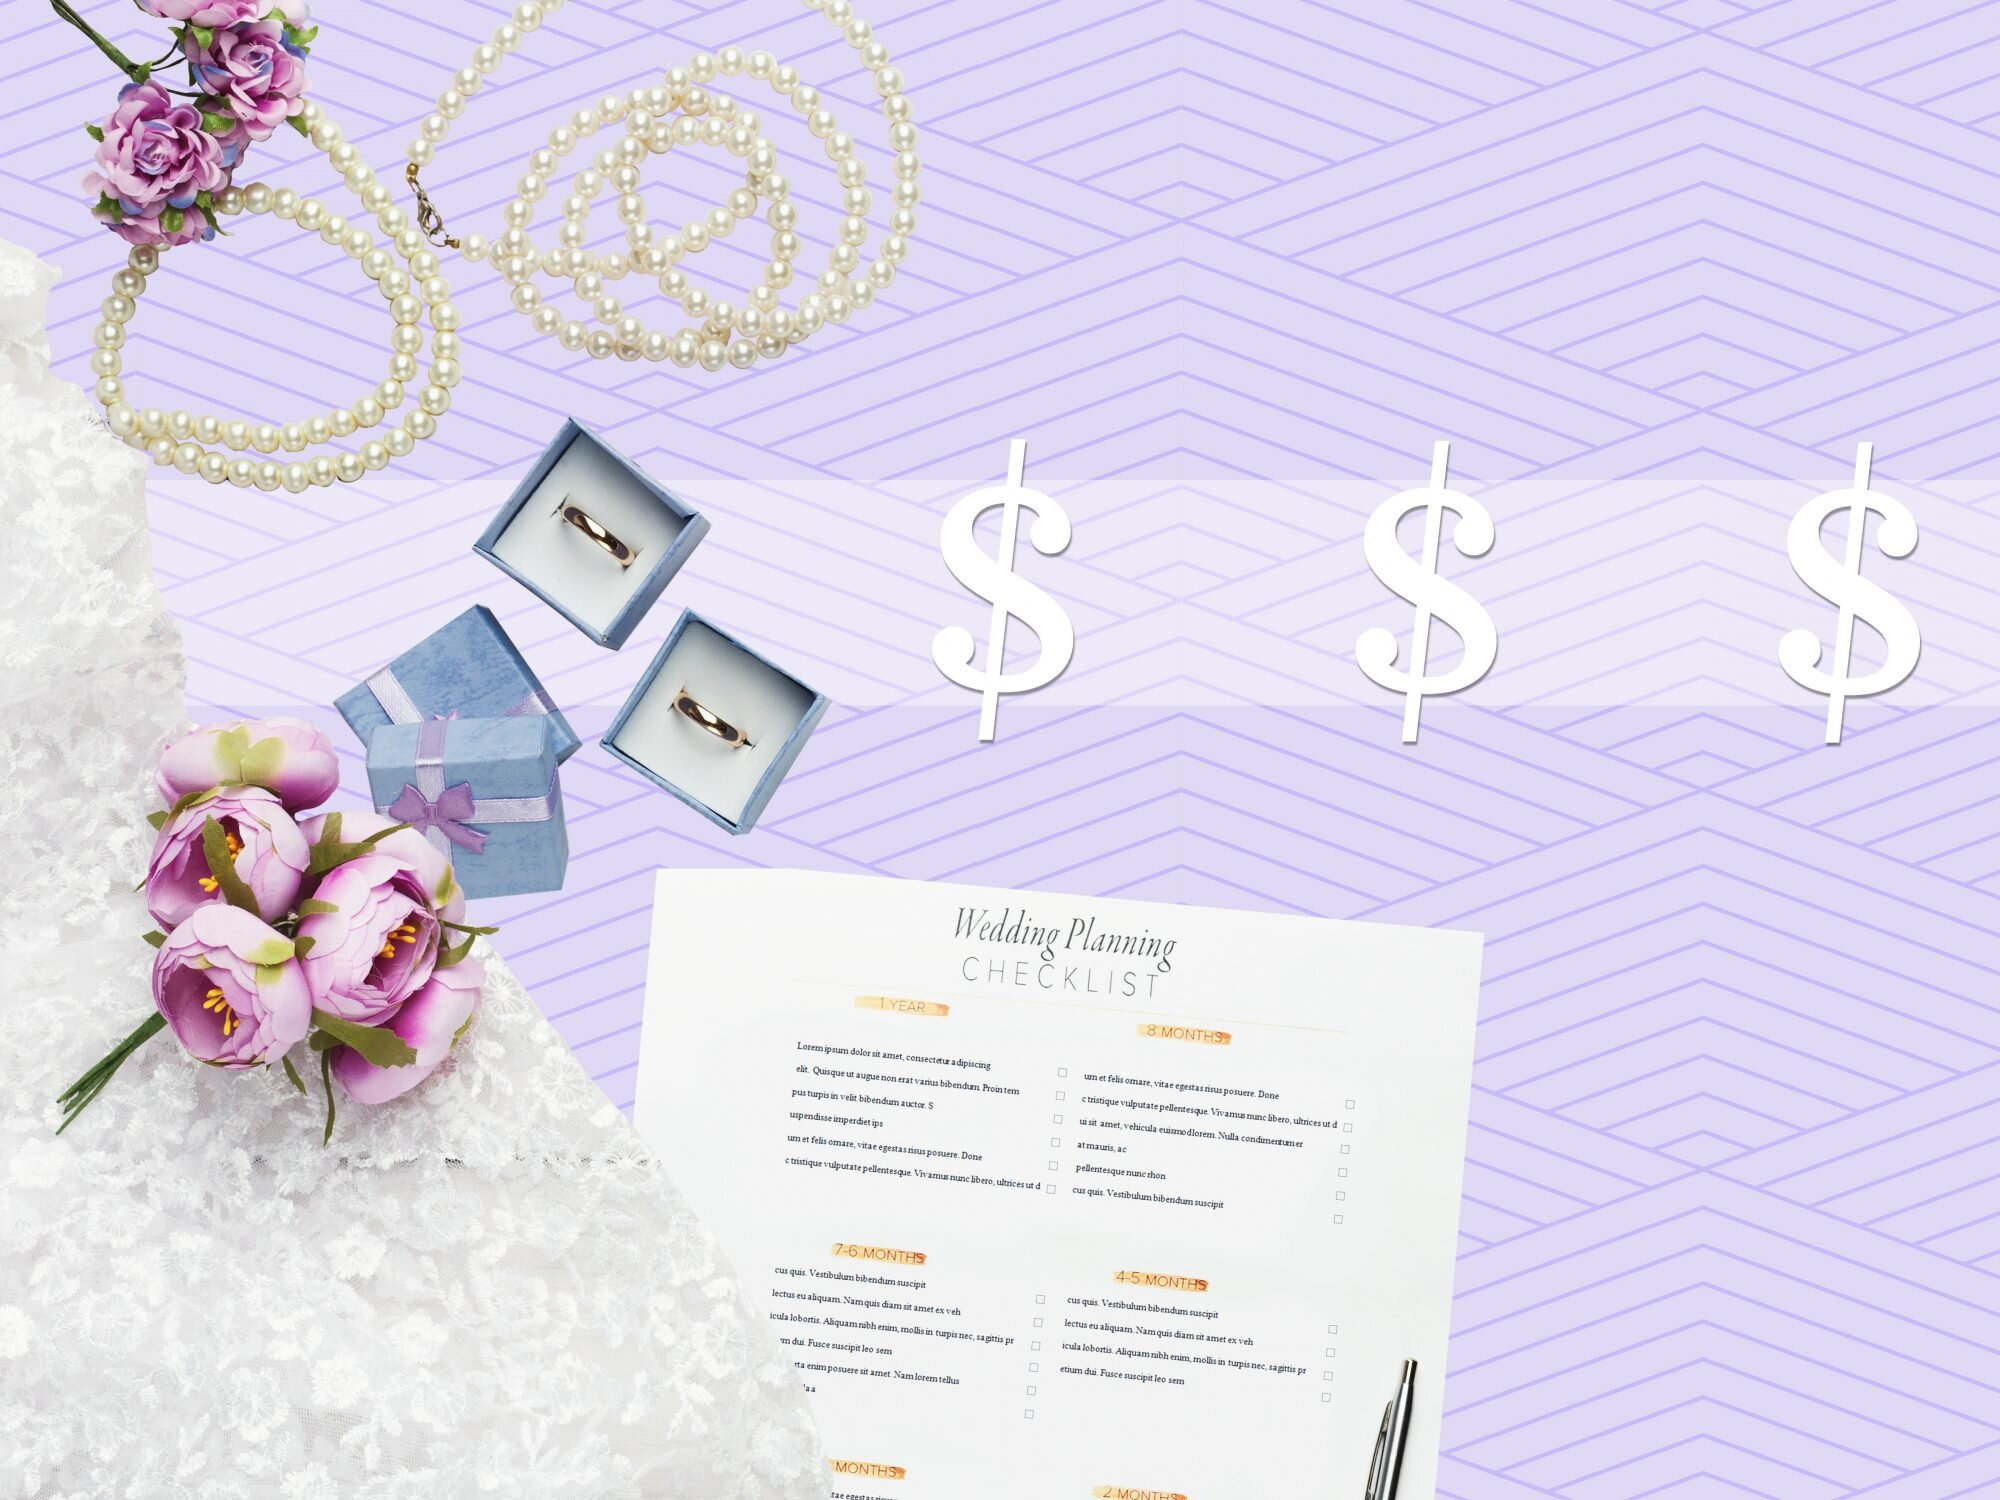 9 Ways To Cut Wedding Costs If You Re On A Strict Budget